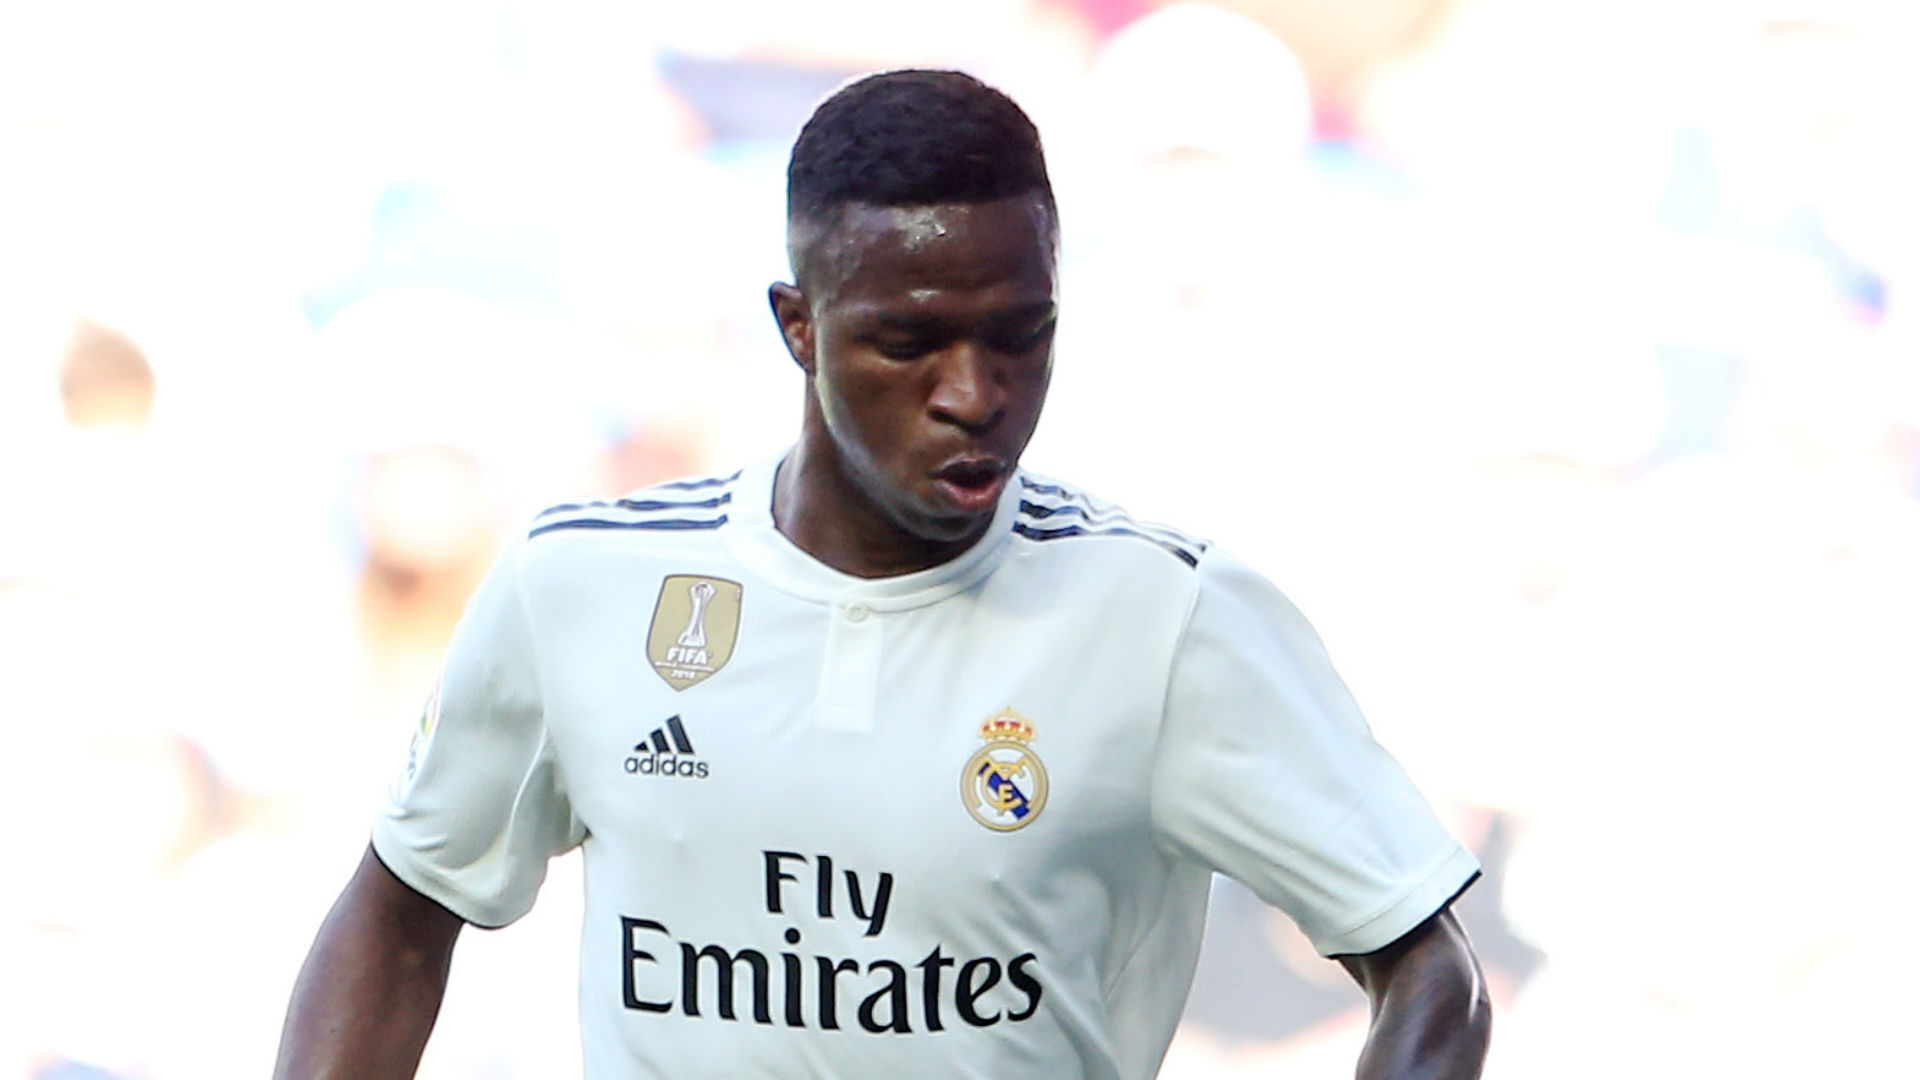 Vinicius Junior: I had a great year despite Real Madrid's struggles